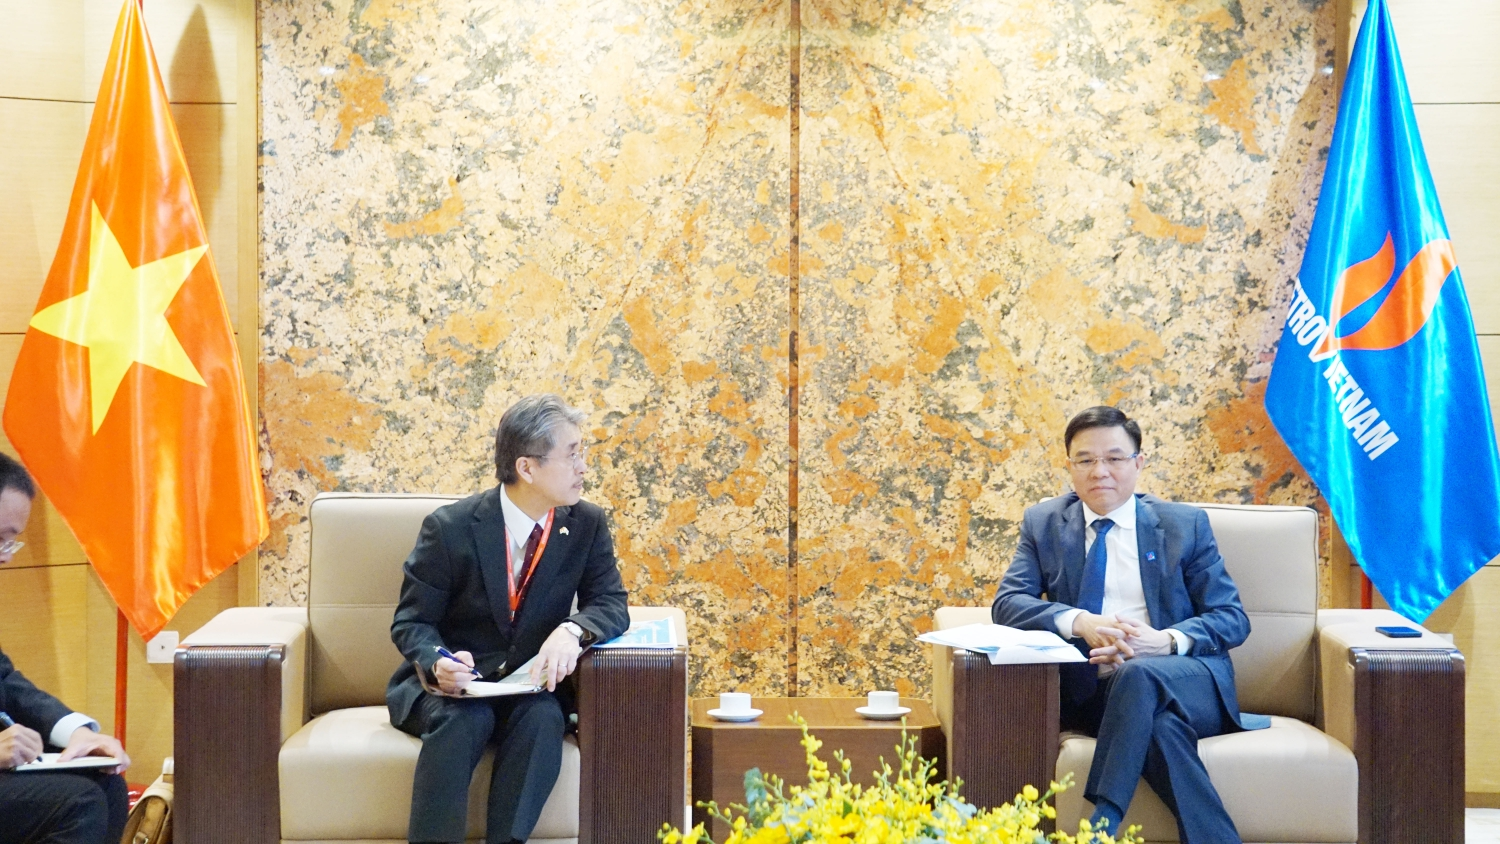 PetroVietnam President and CEO Le Manh Hung meets with General Director of Japan Vietnam Petroleum Company (JVPC)